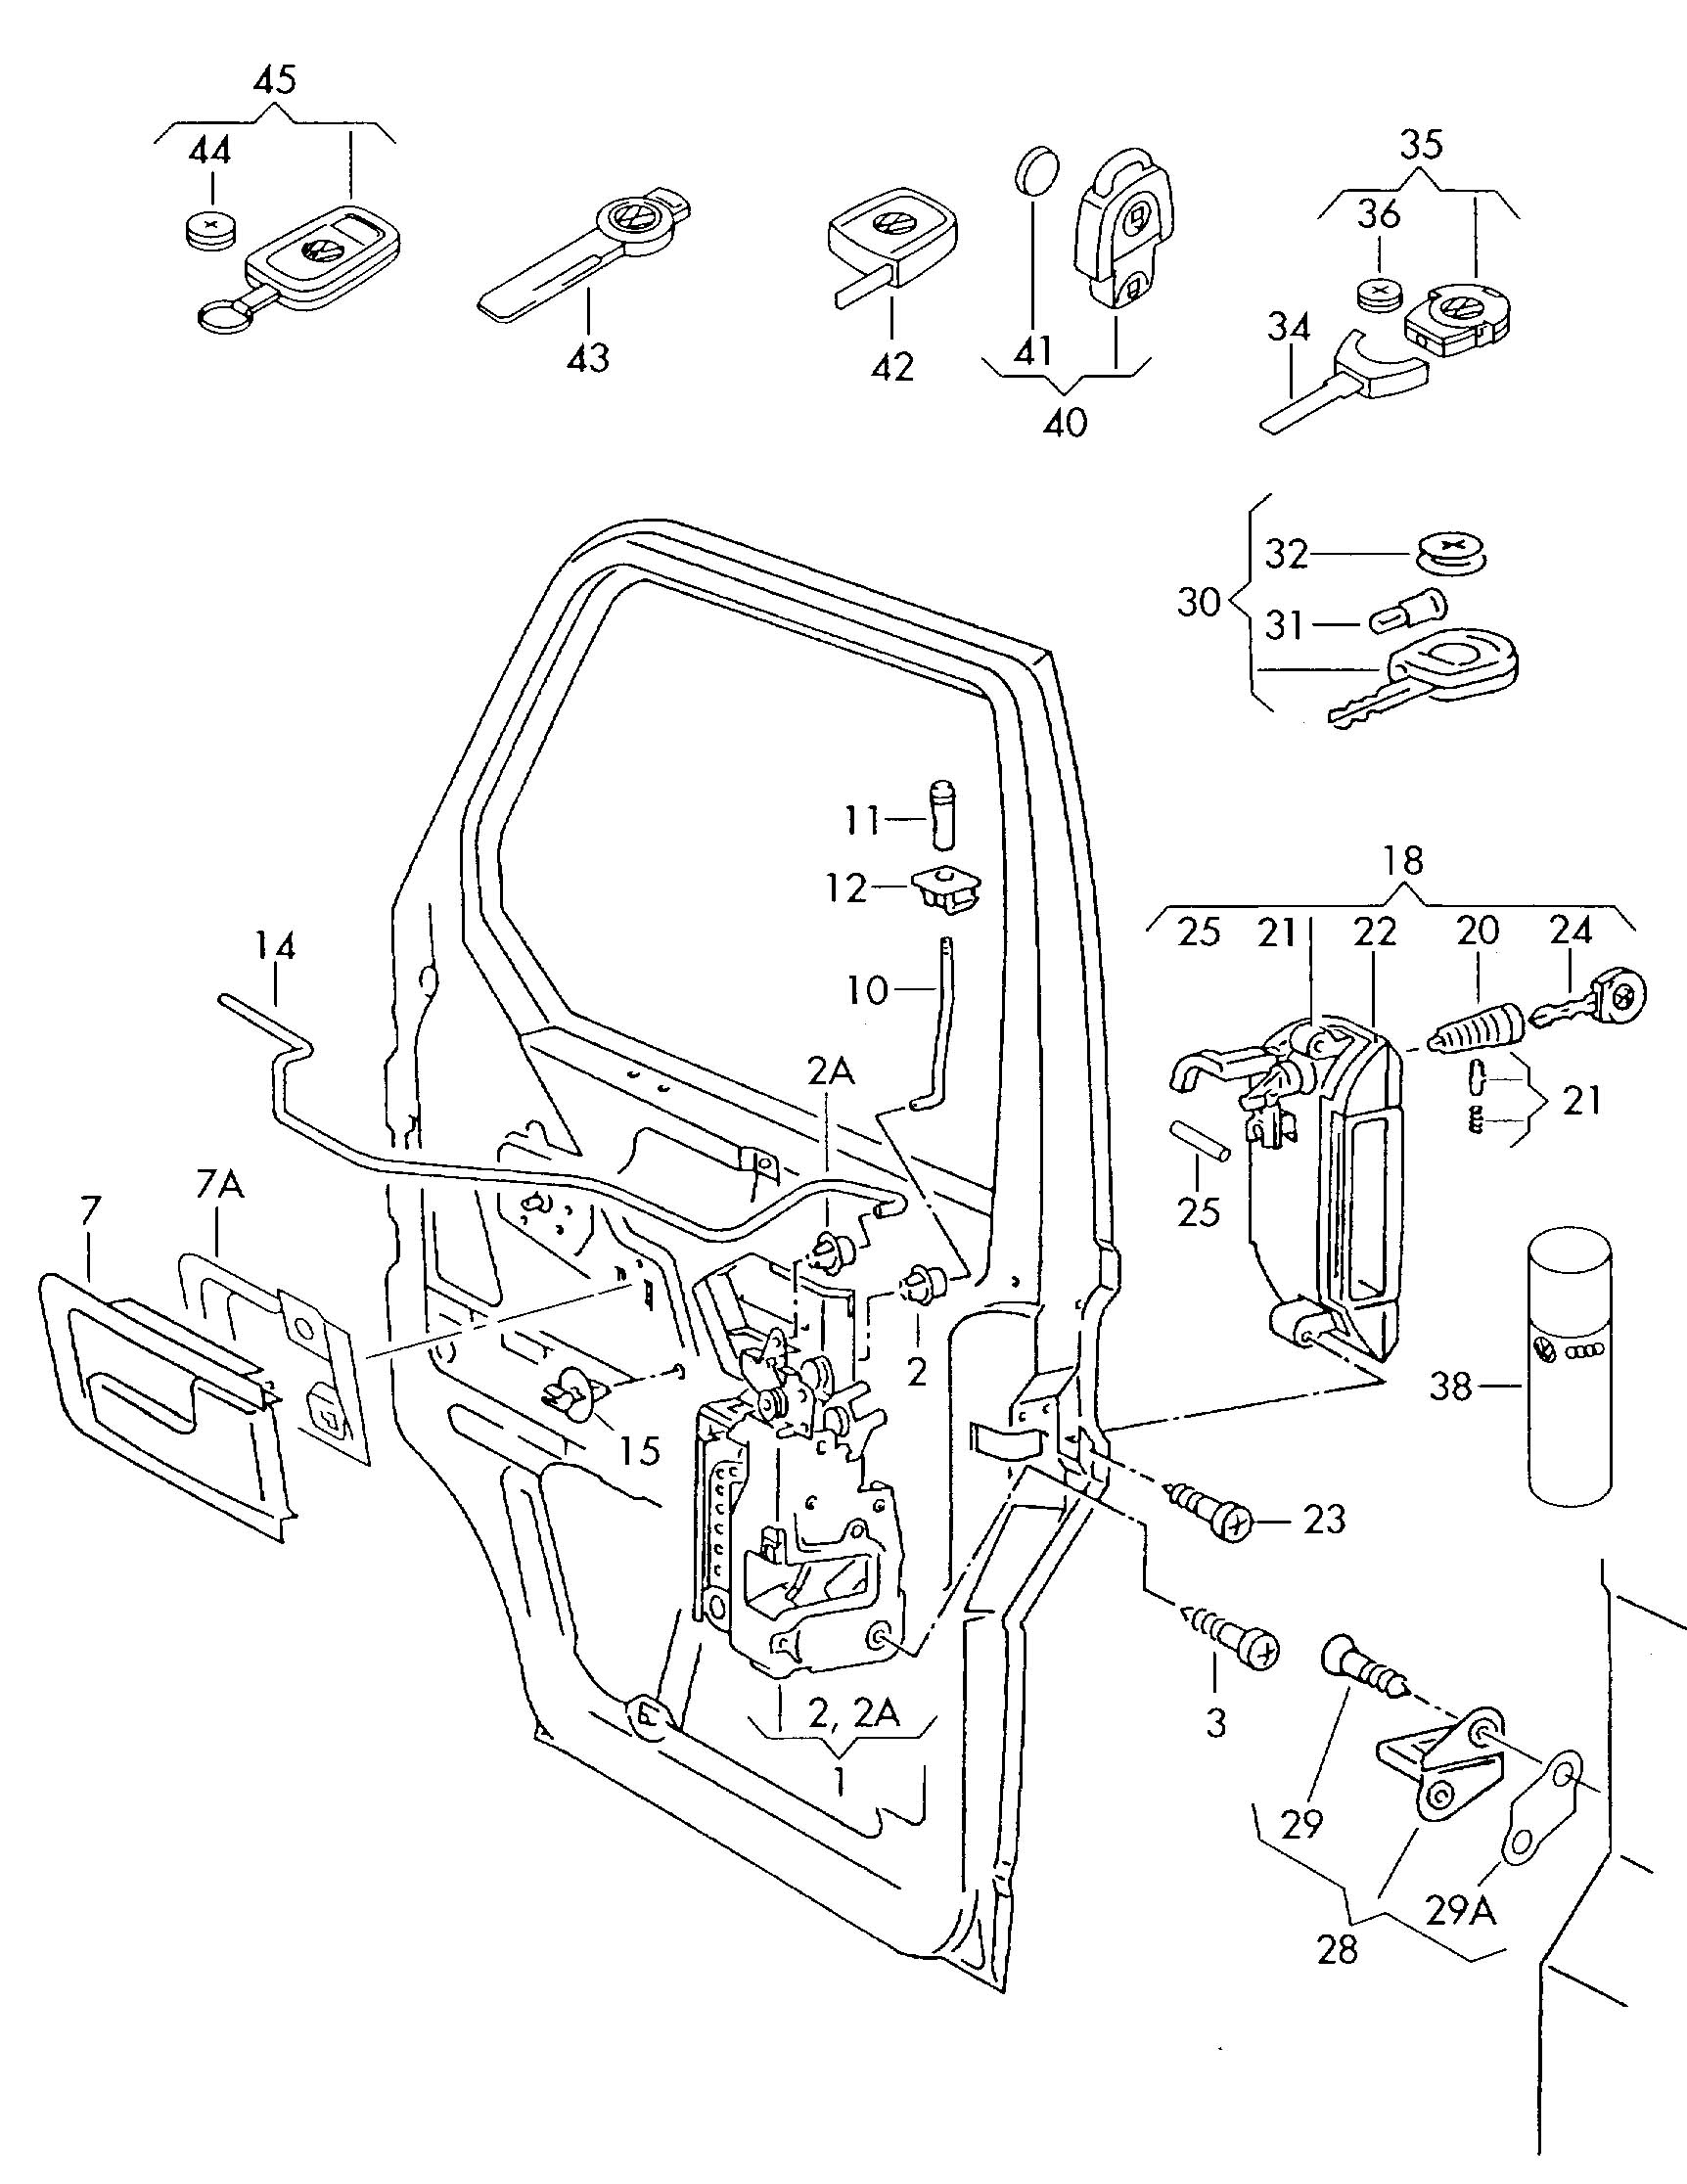 vw 1600 engine diagram baldor single phase 230v motor wiring cc auto